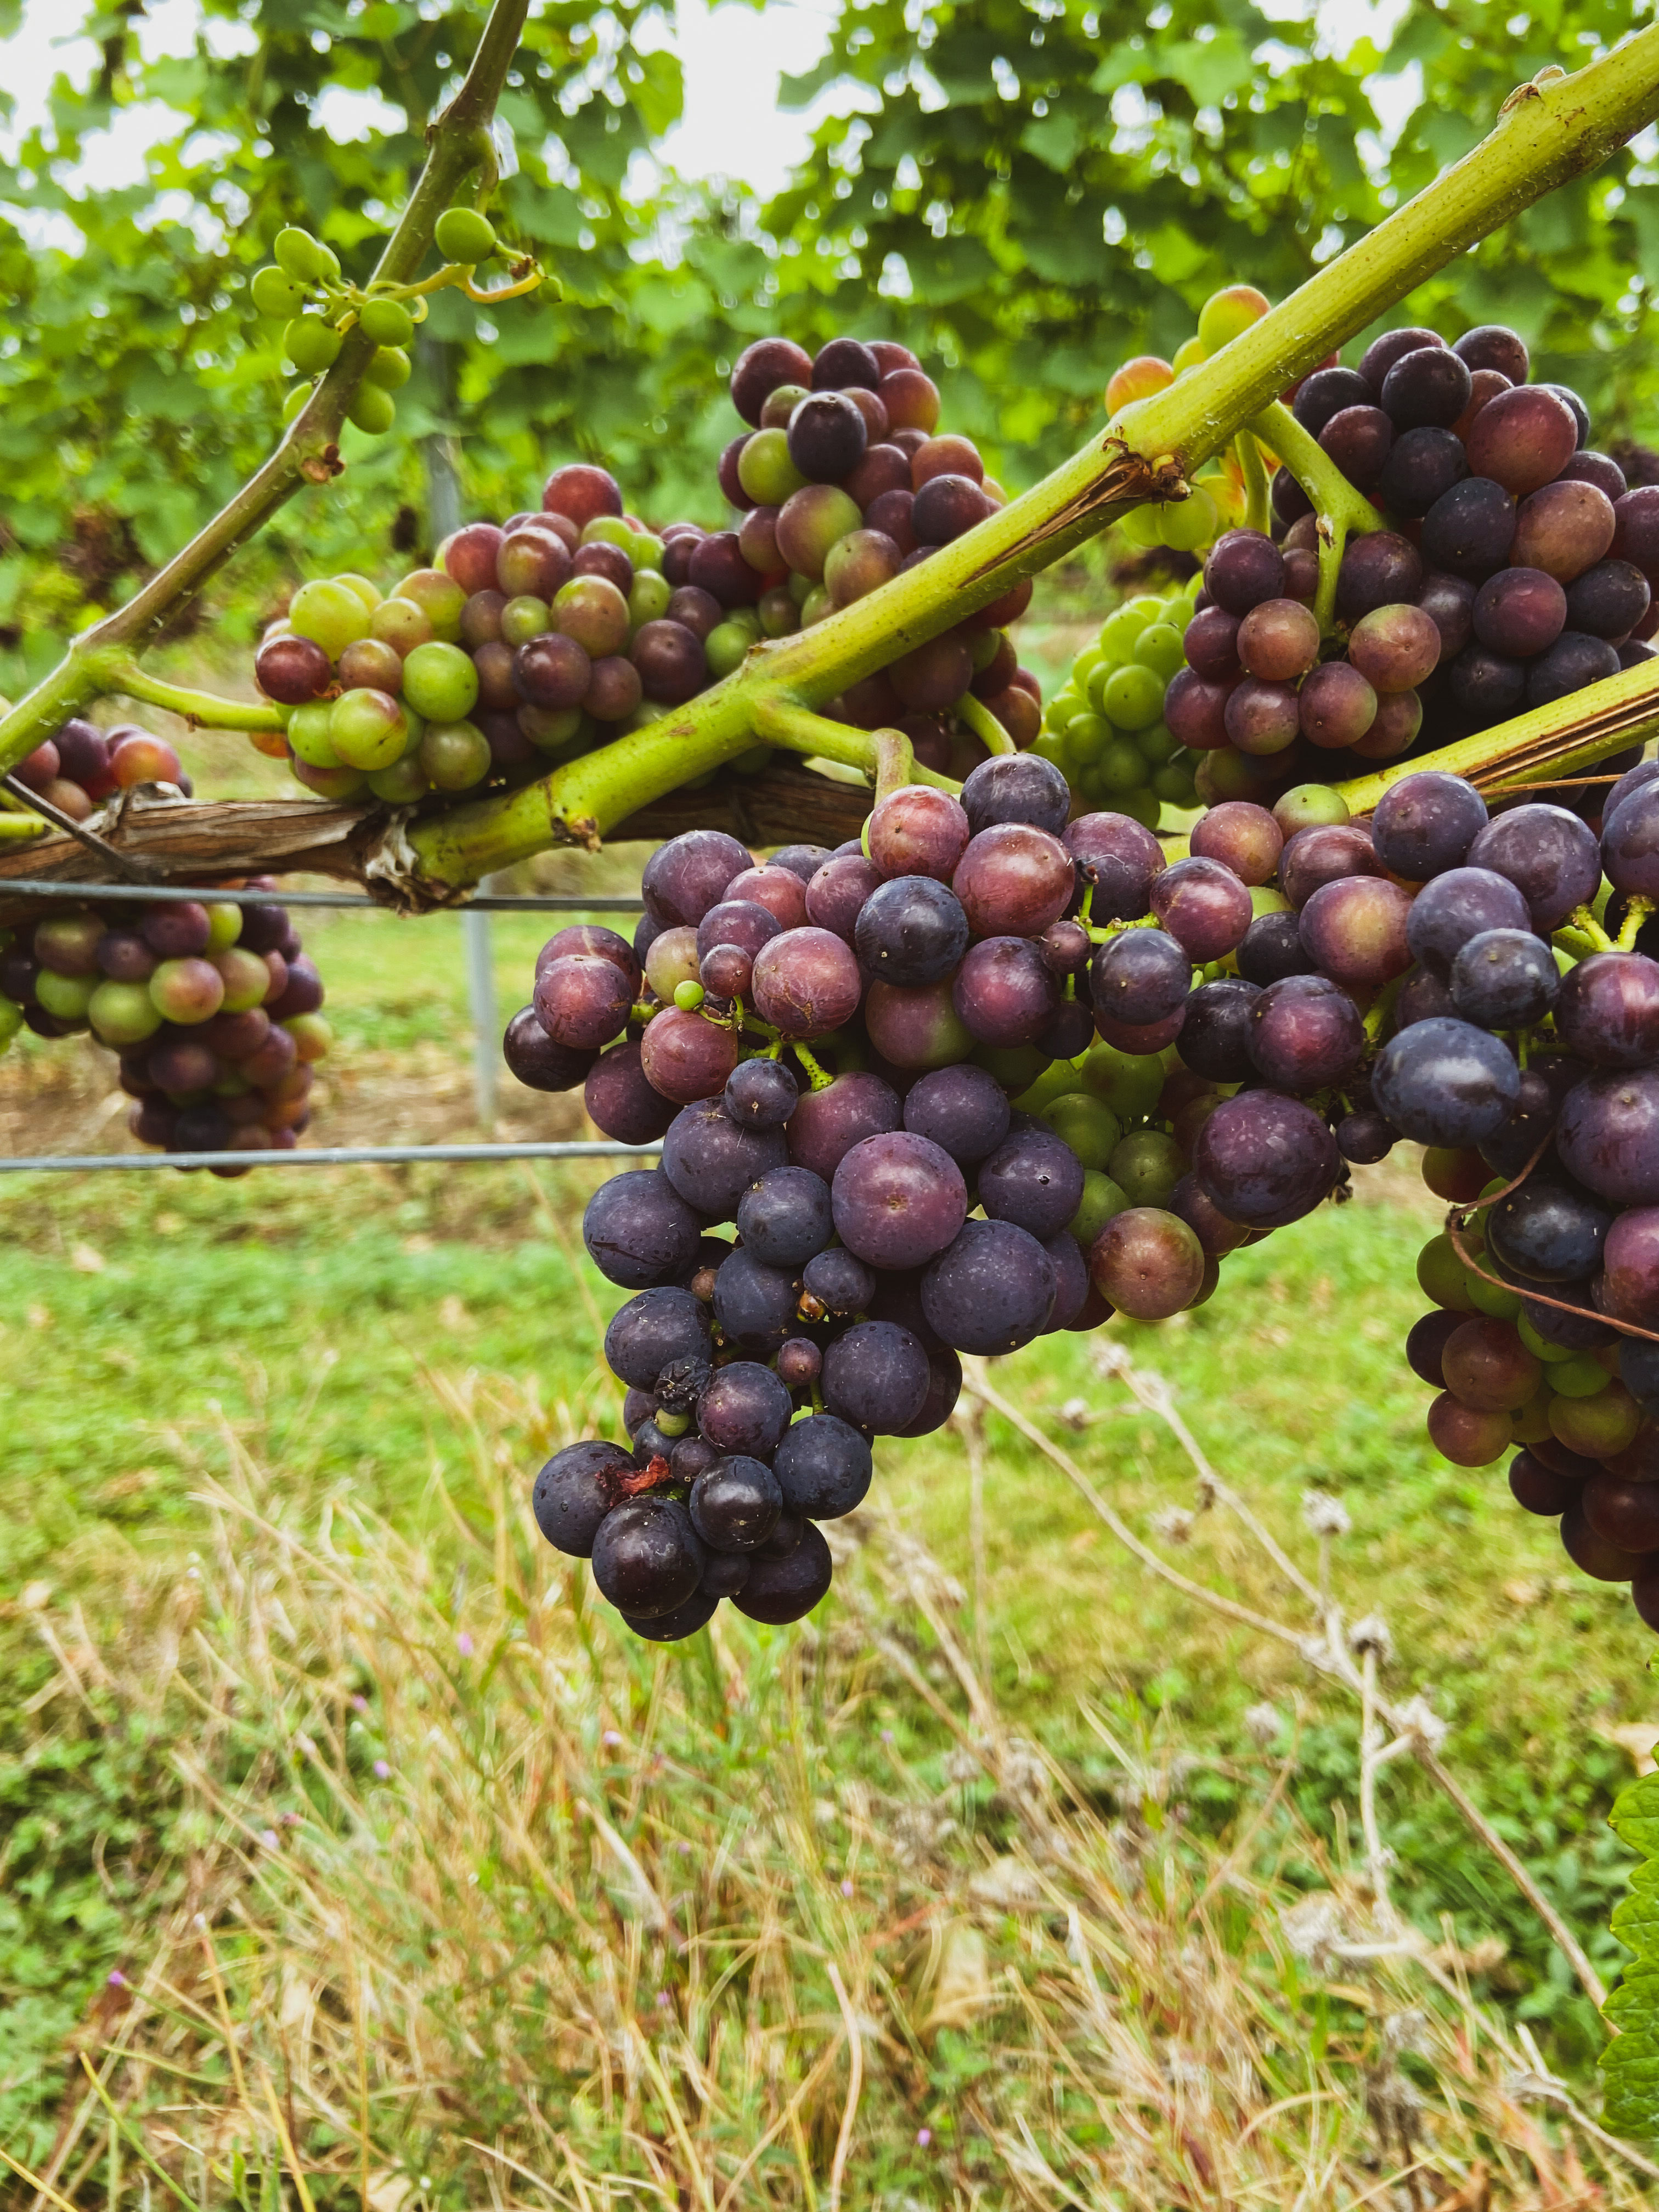 Red grapes from the Martins Lane Vineyard available at the Essex Produce Co. in Kelvedon, Essex.